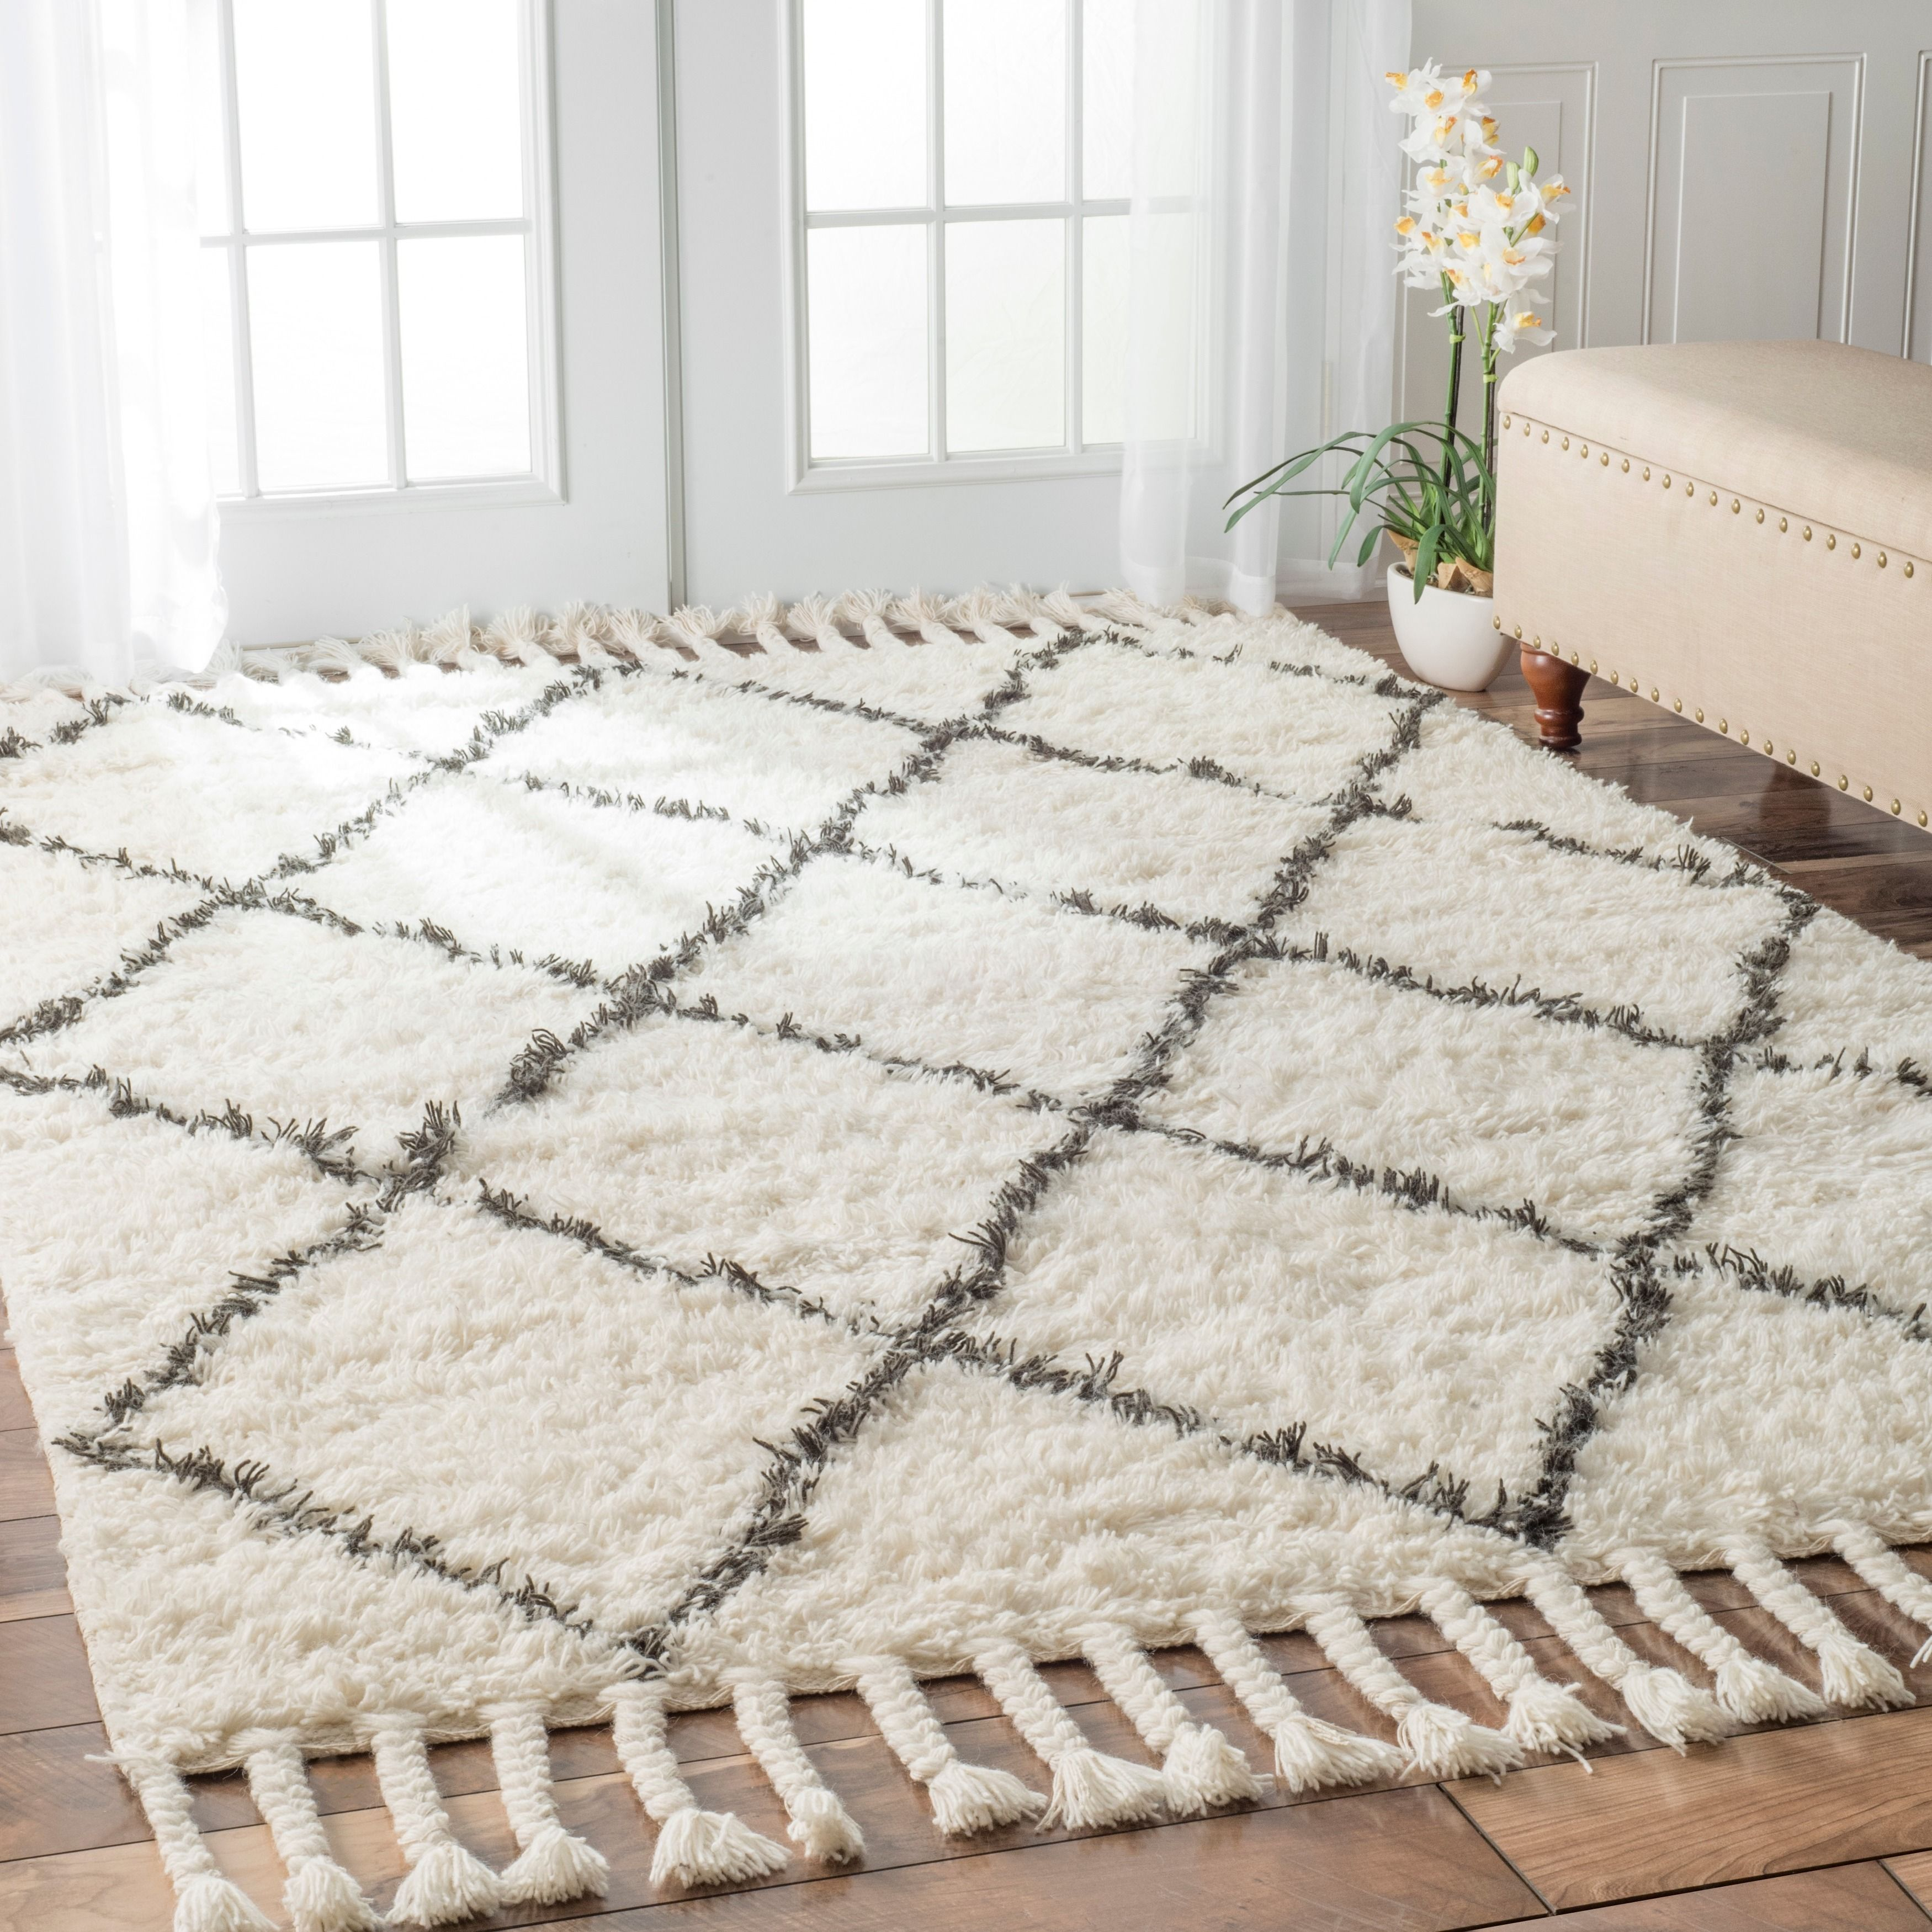 nuLOOM Hand knotted Moroccan Trellis Natural Shag Wool Rug 3 x 5